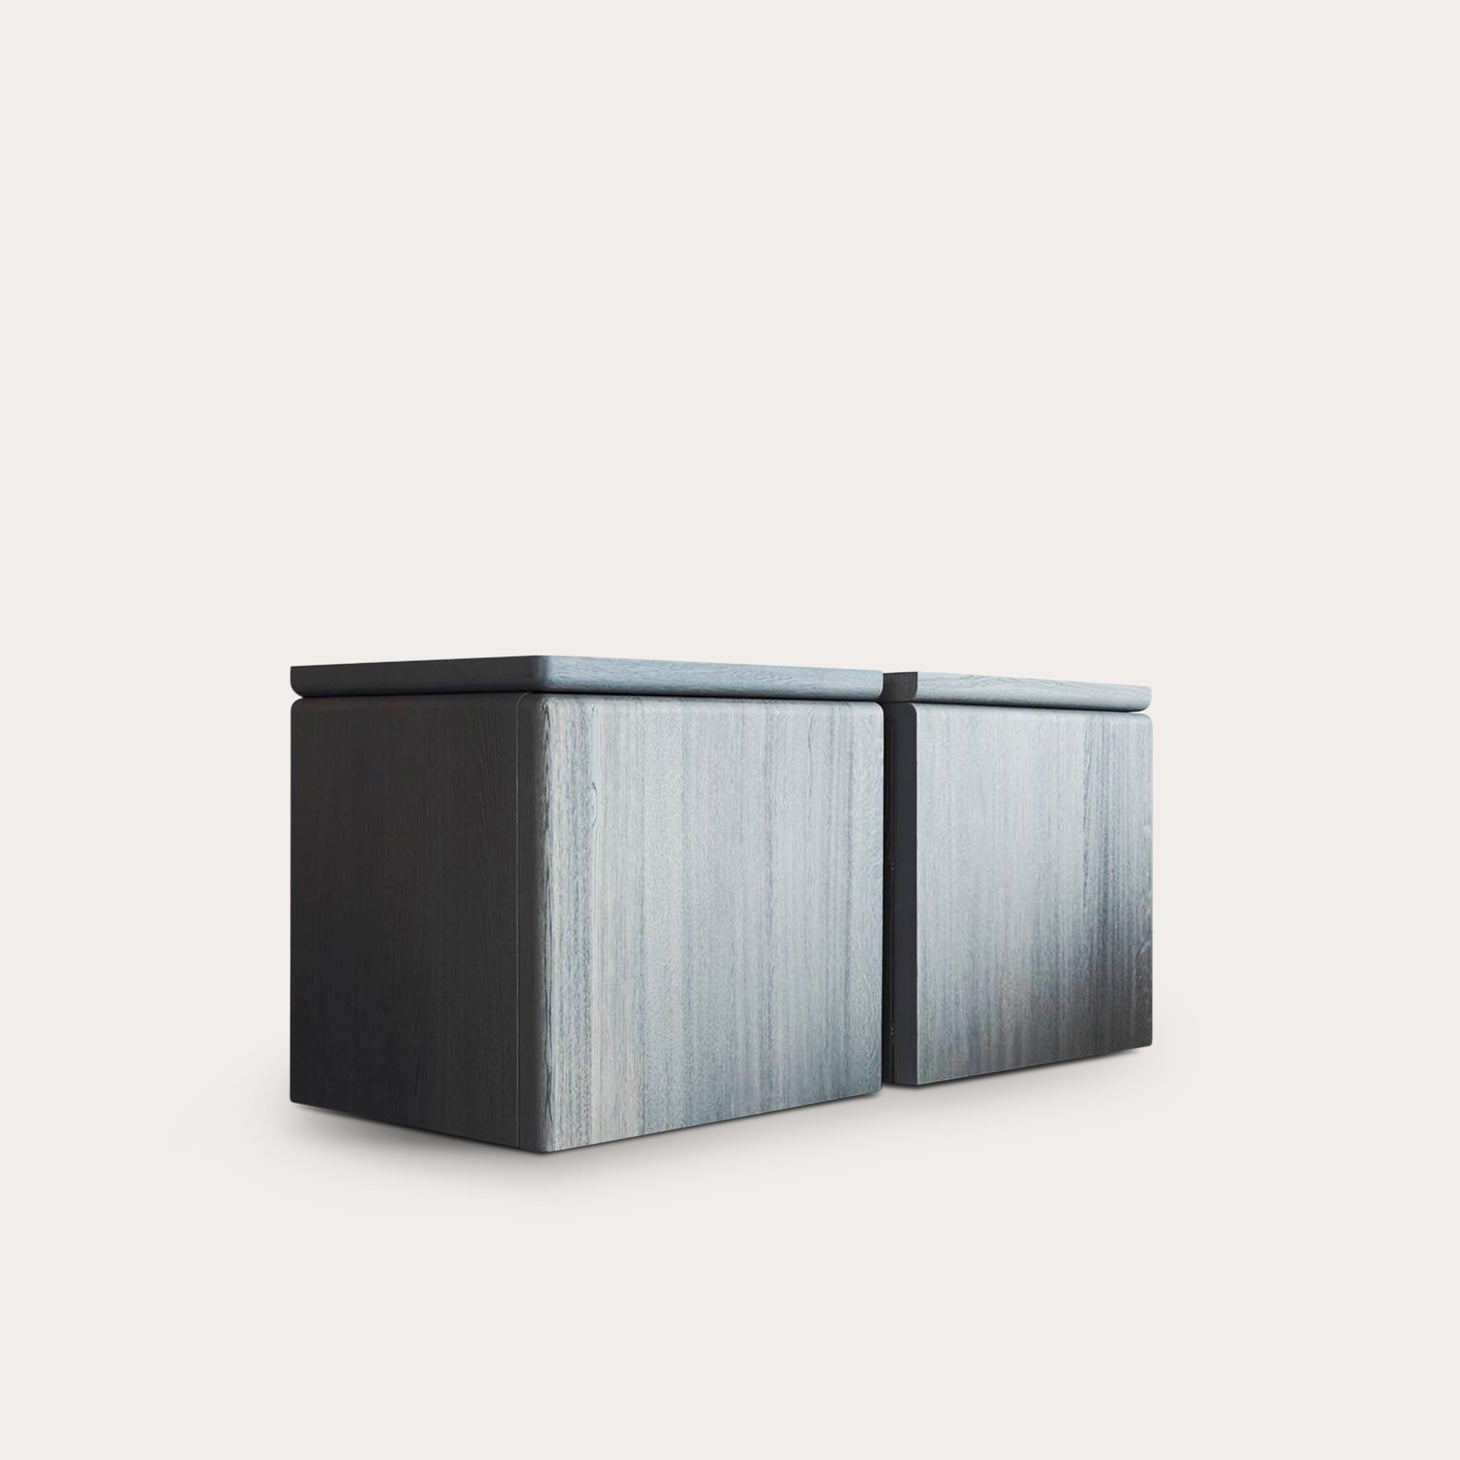 Kast 001 Storage Thomas Haarmann Designer Furniture Sku: 416-220-10161